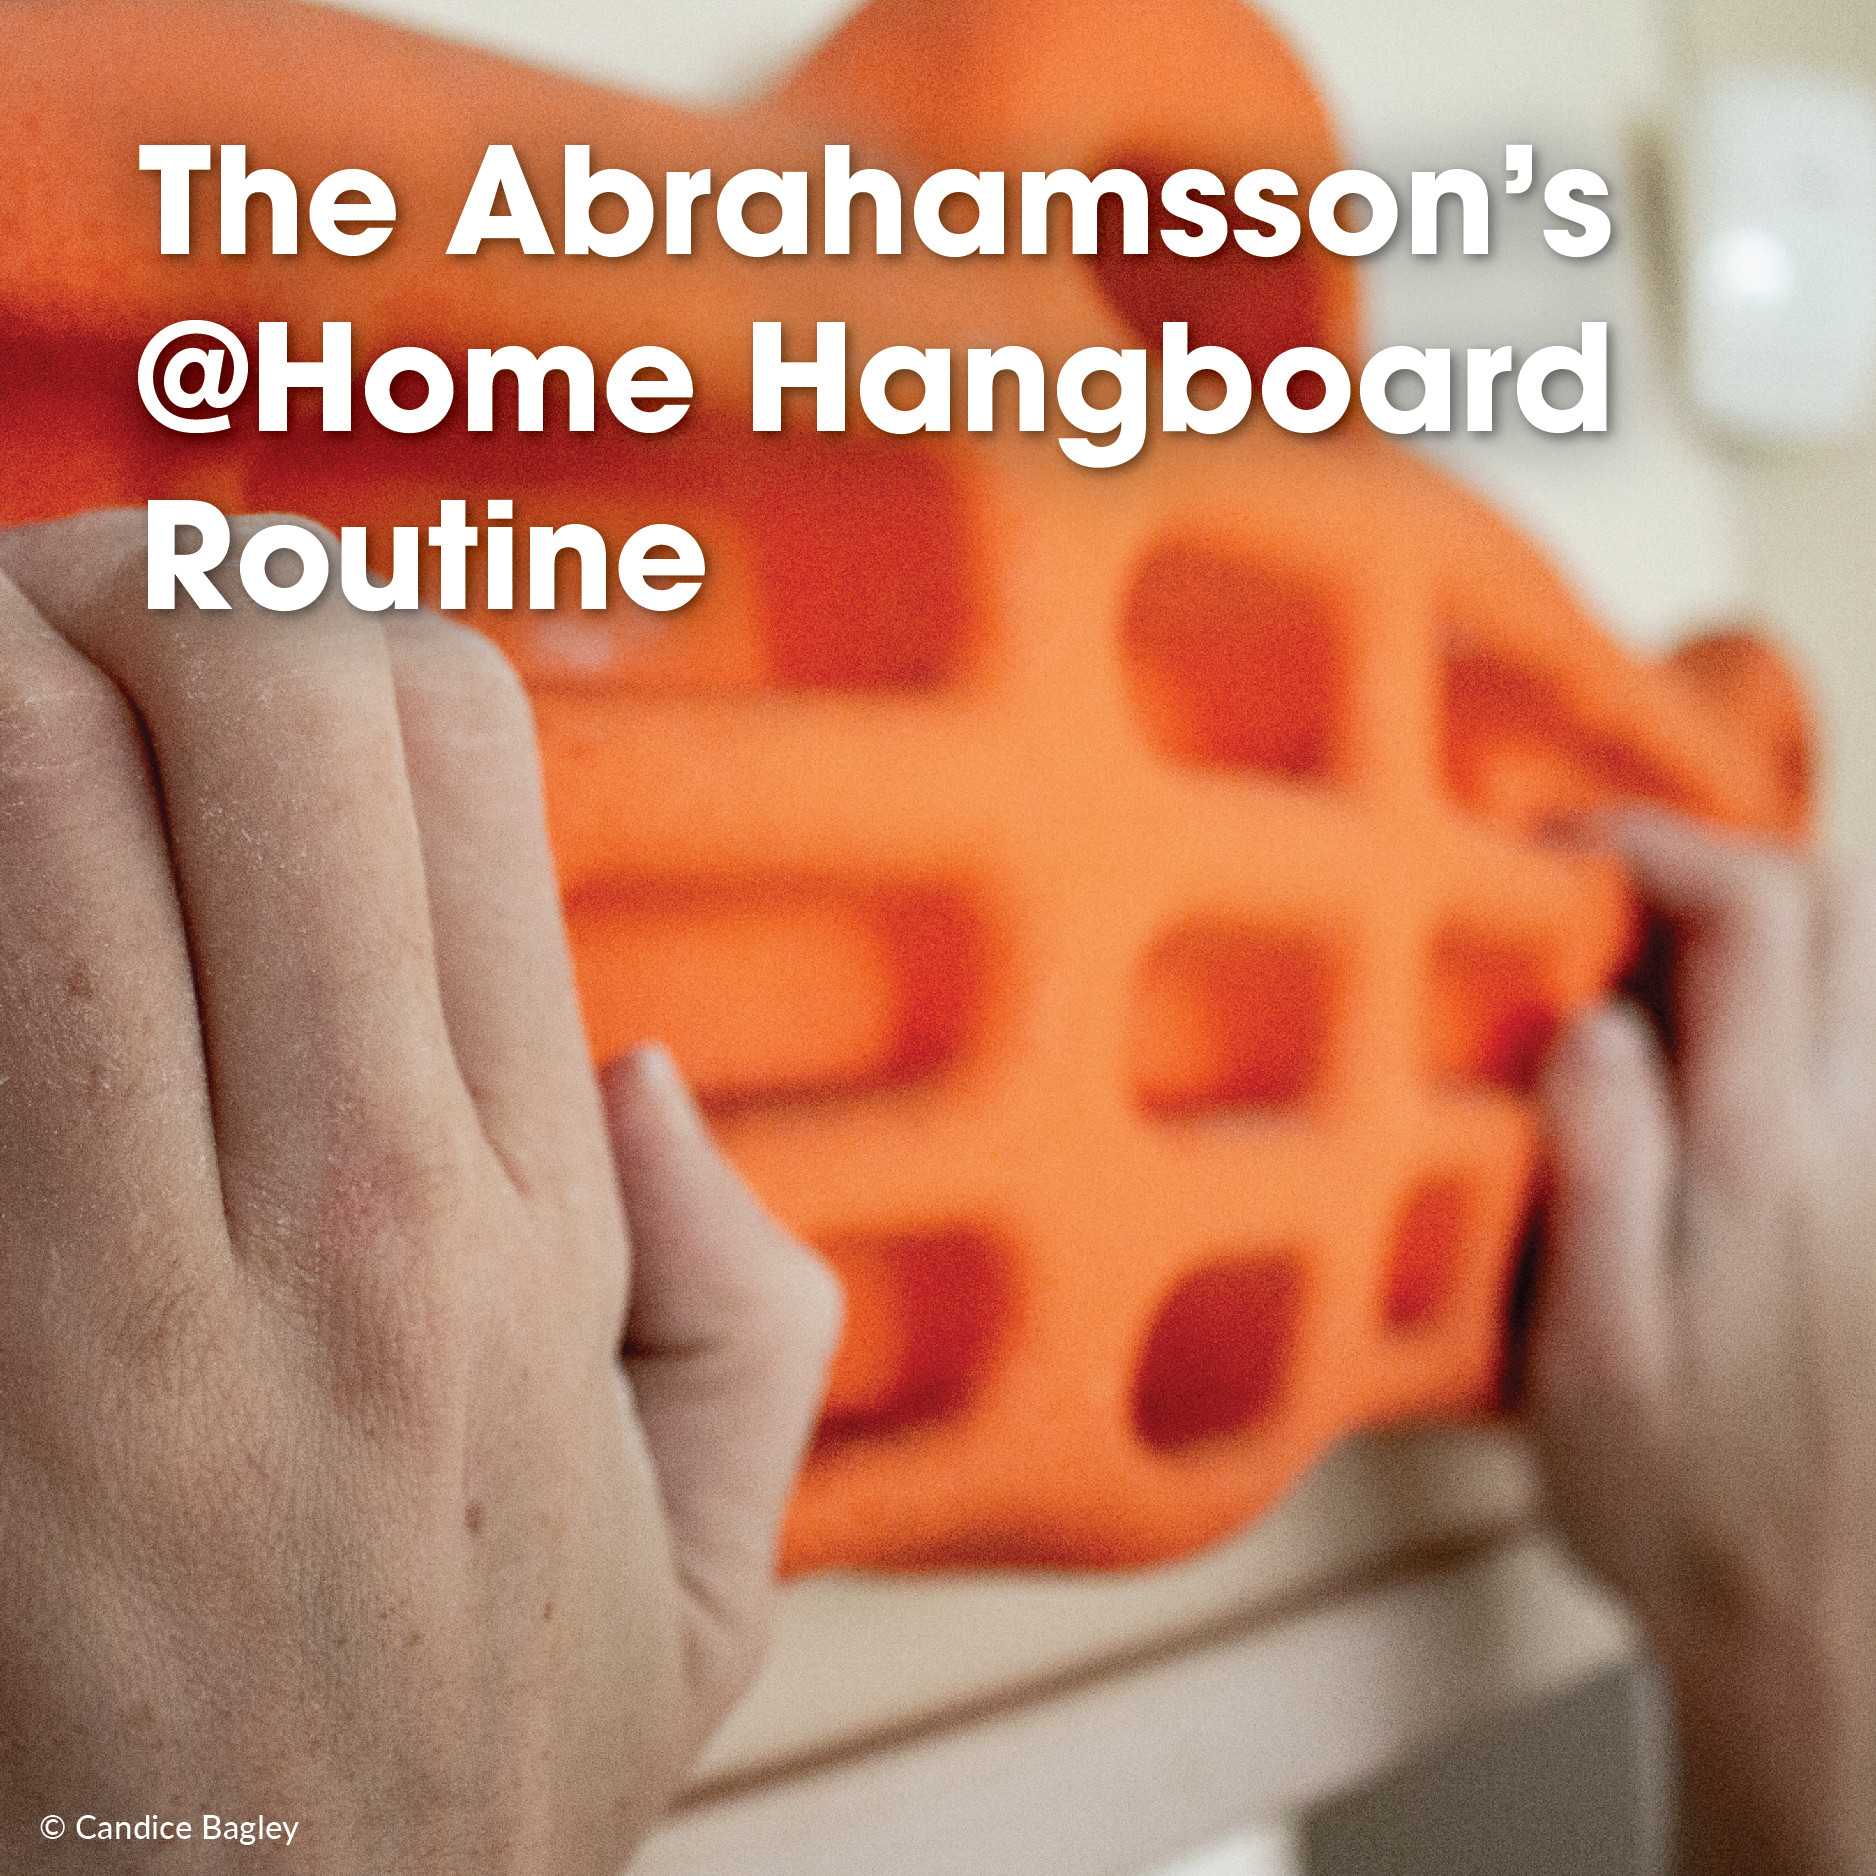 The Abrahamsson's @Home Hangboard Routine